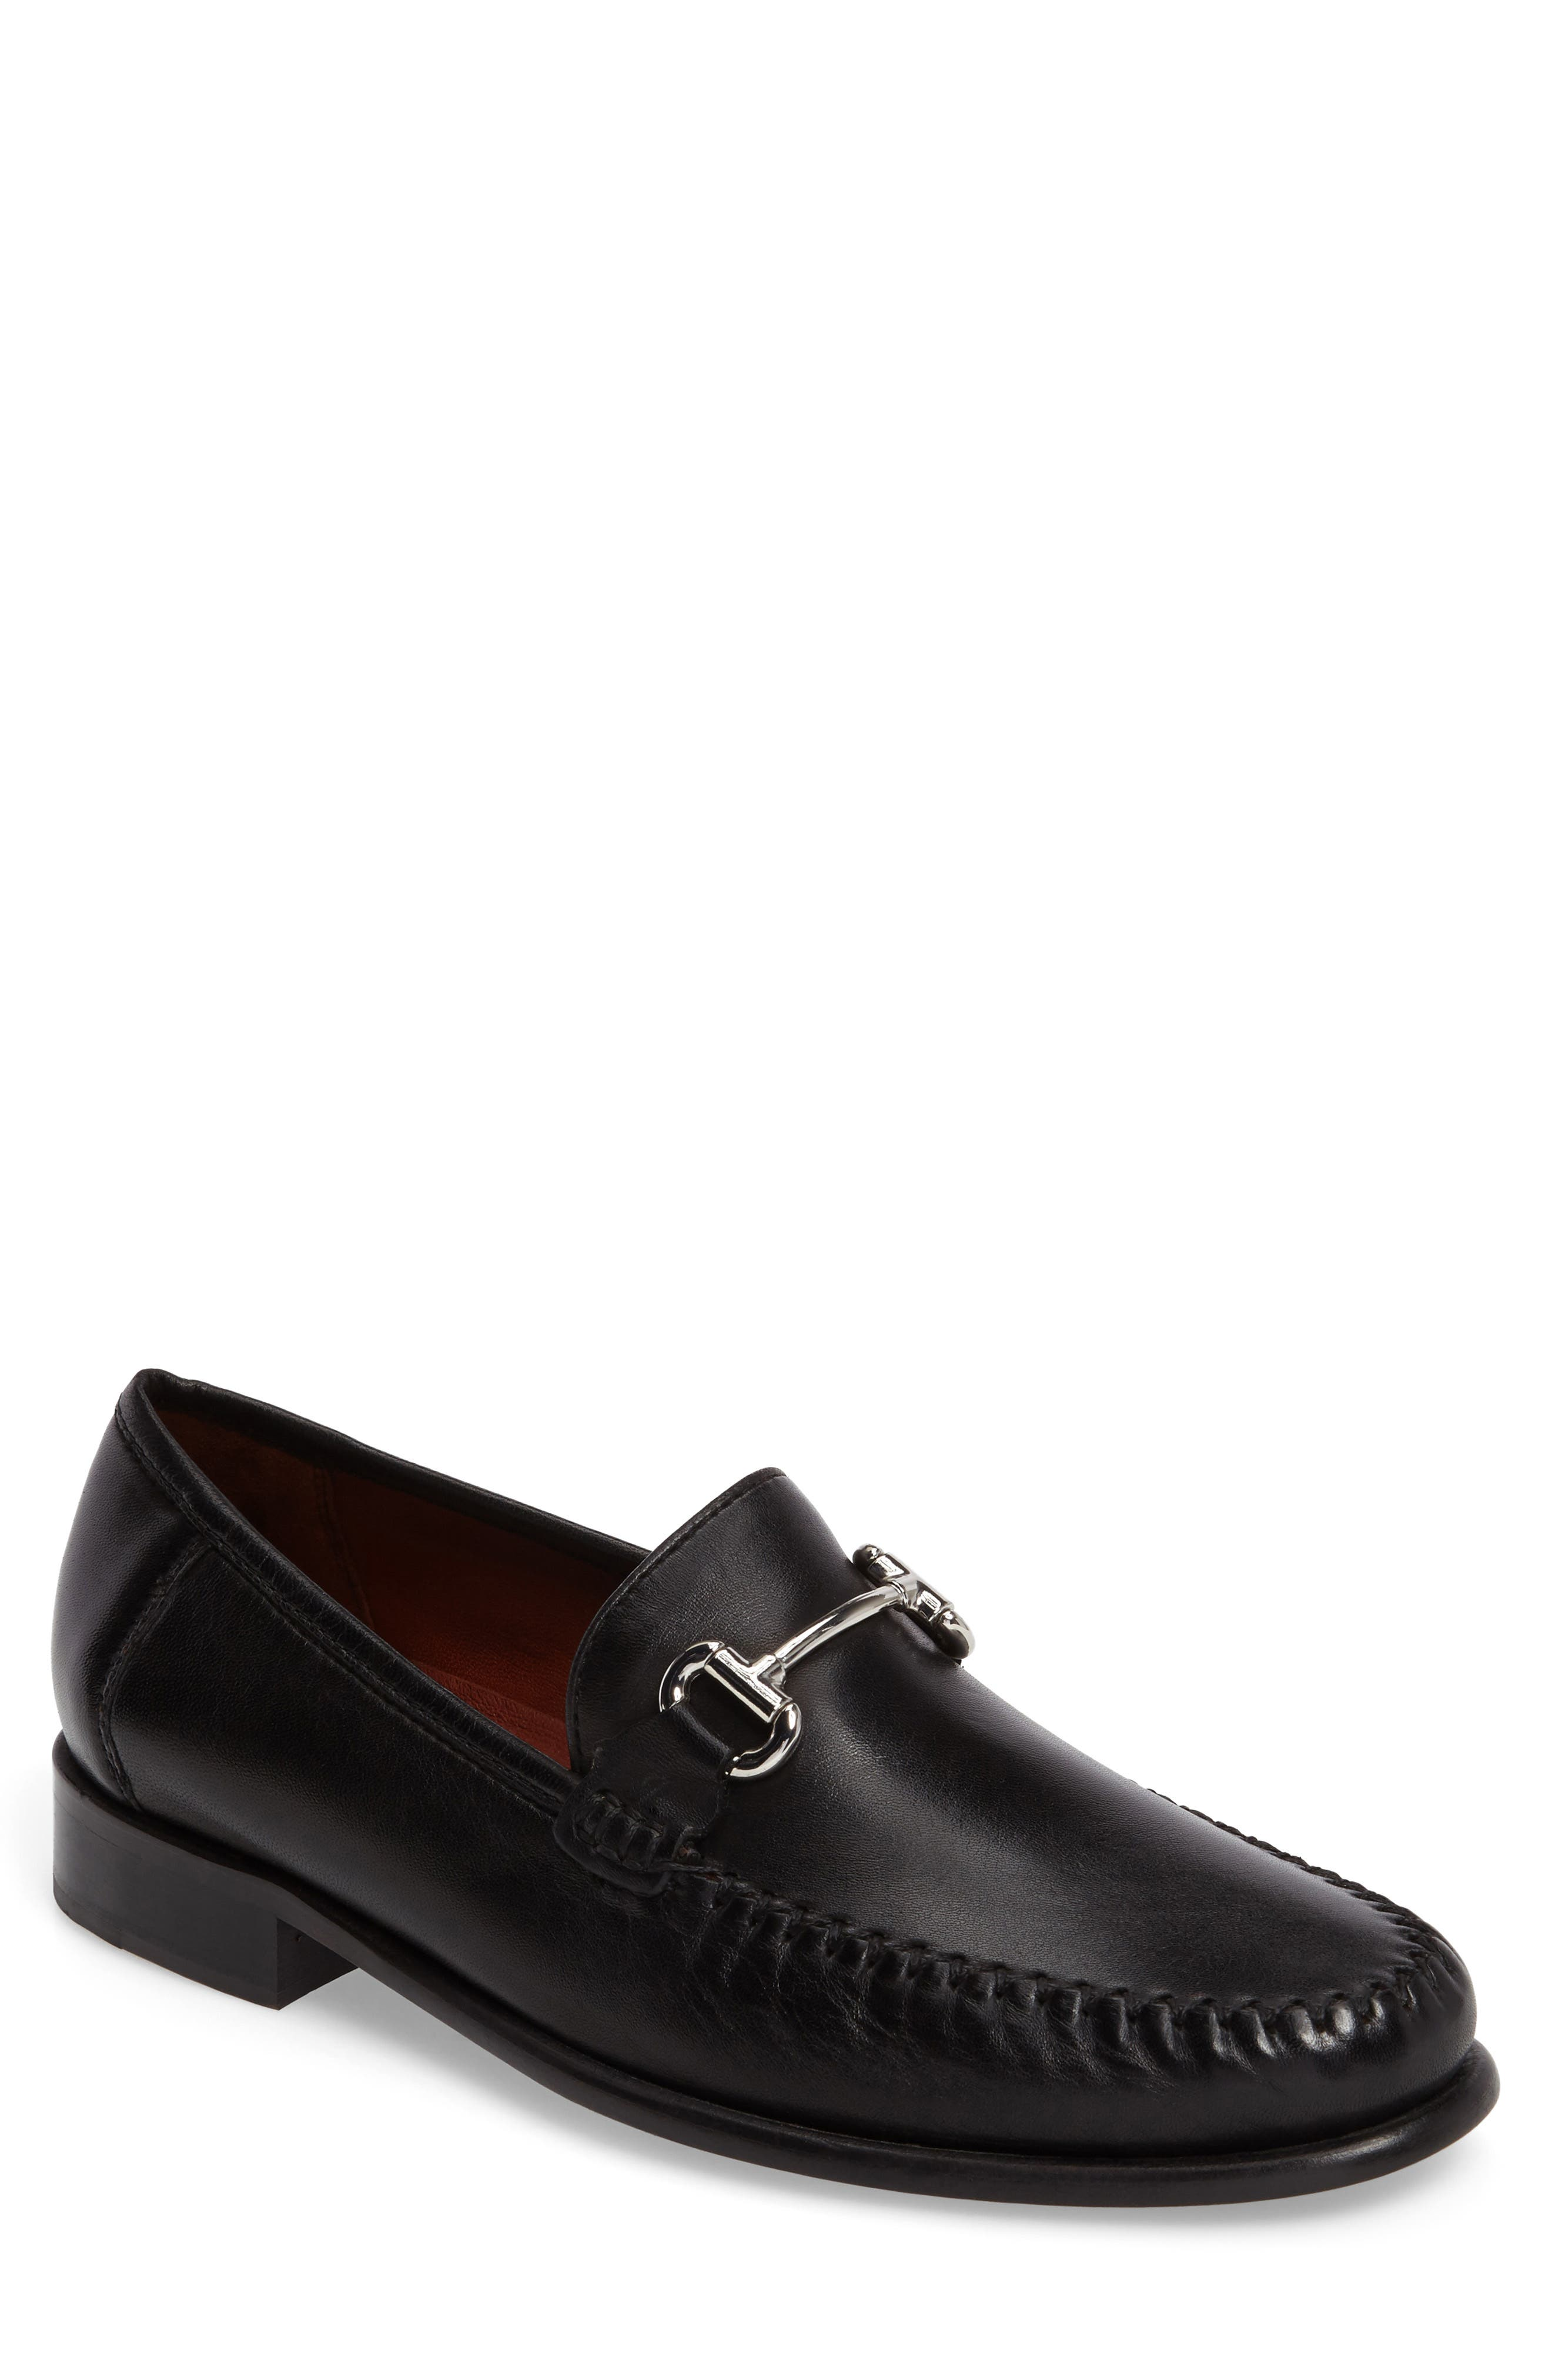 Alternate Image 1 Selected - Robert Zur Elton Bit Loafer (Men)